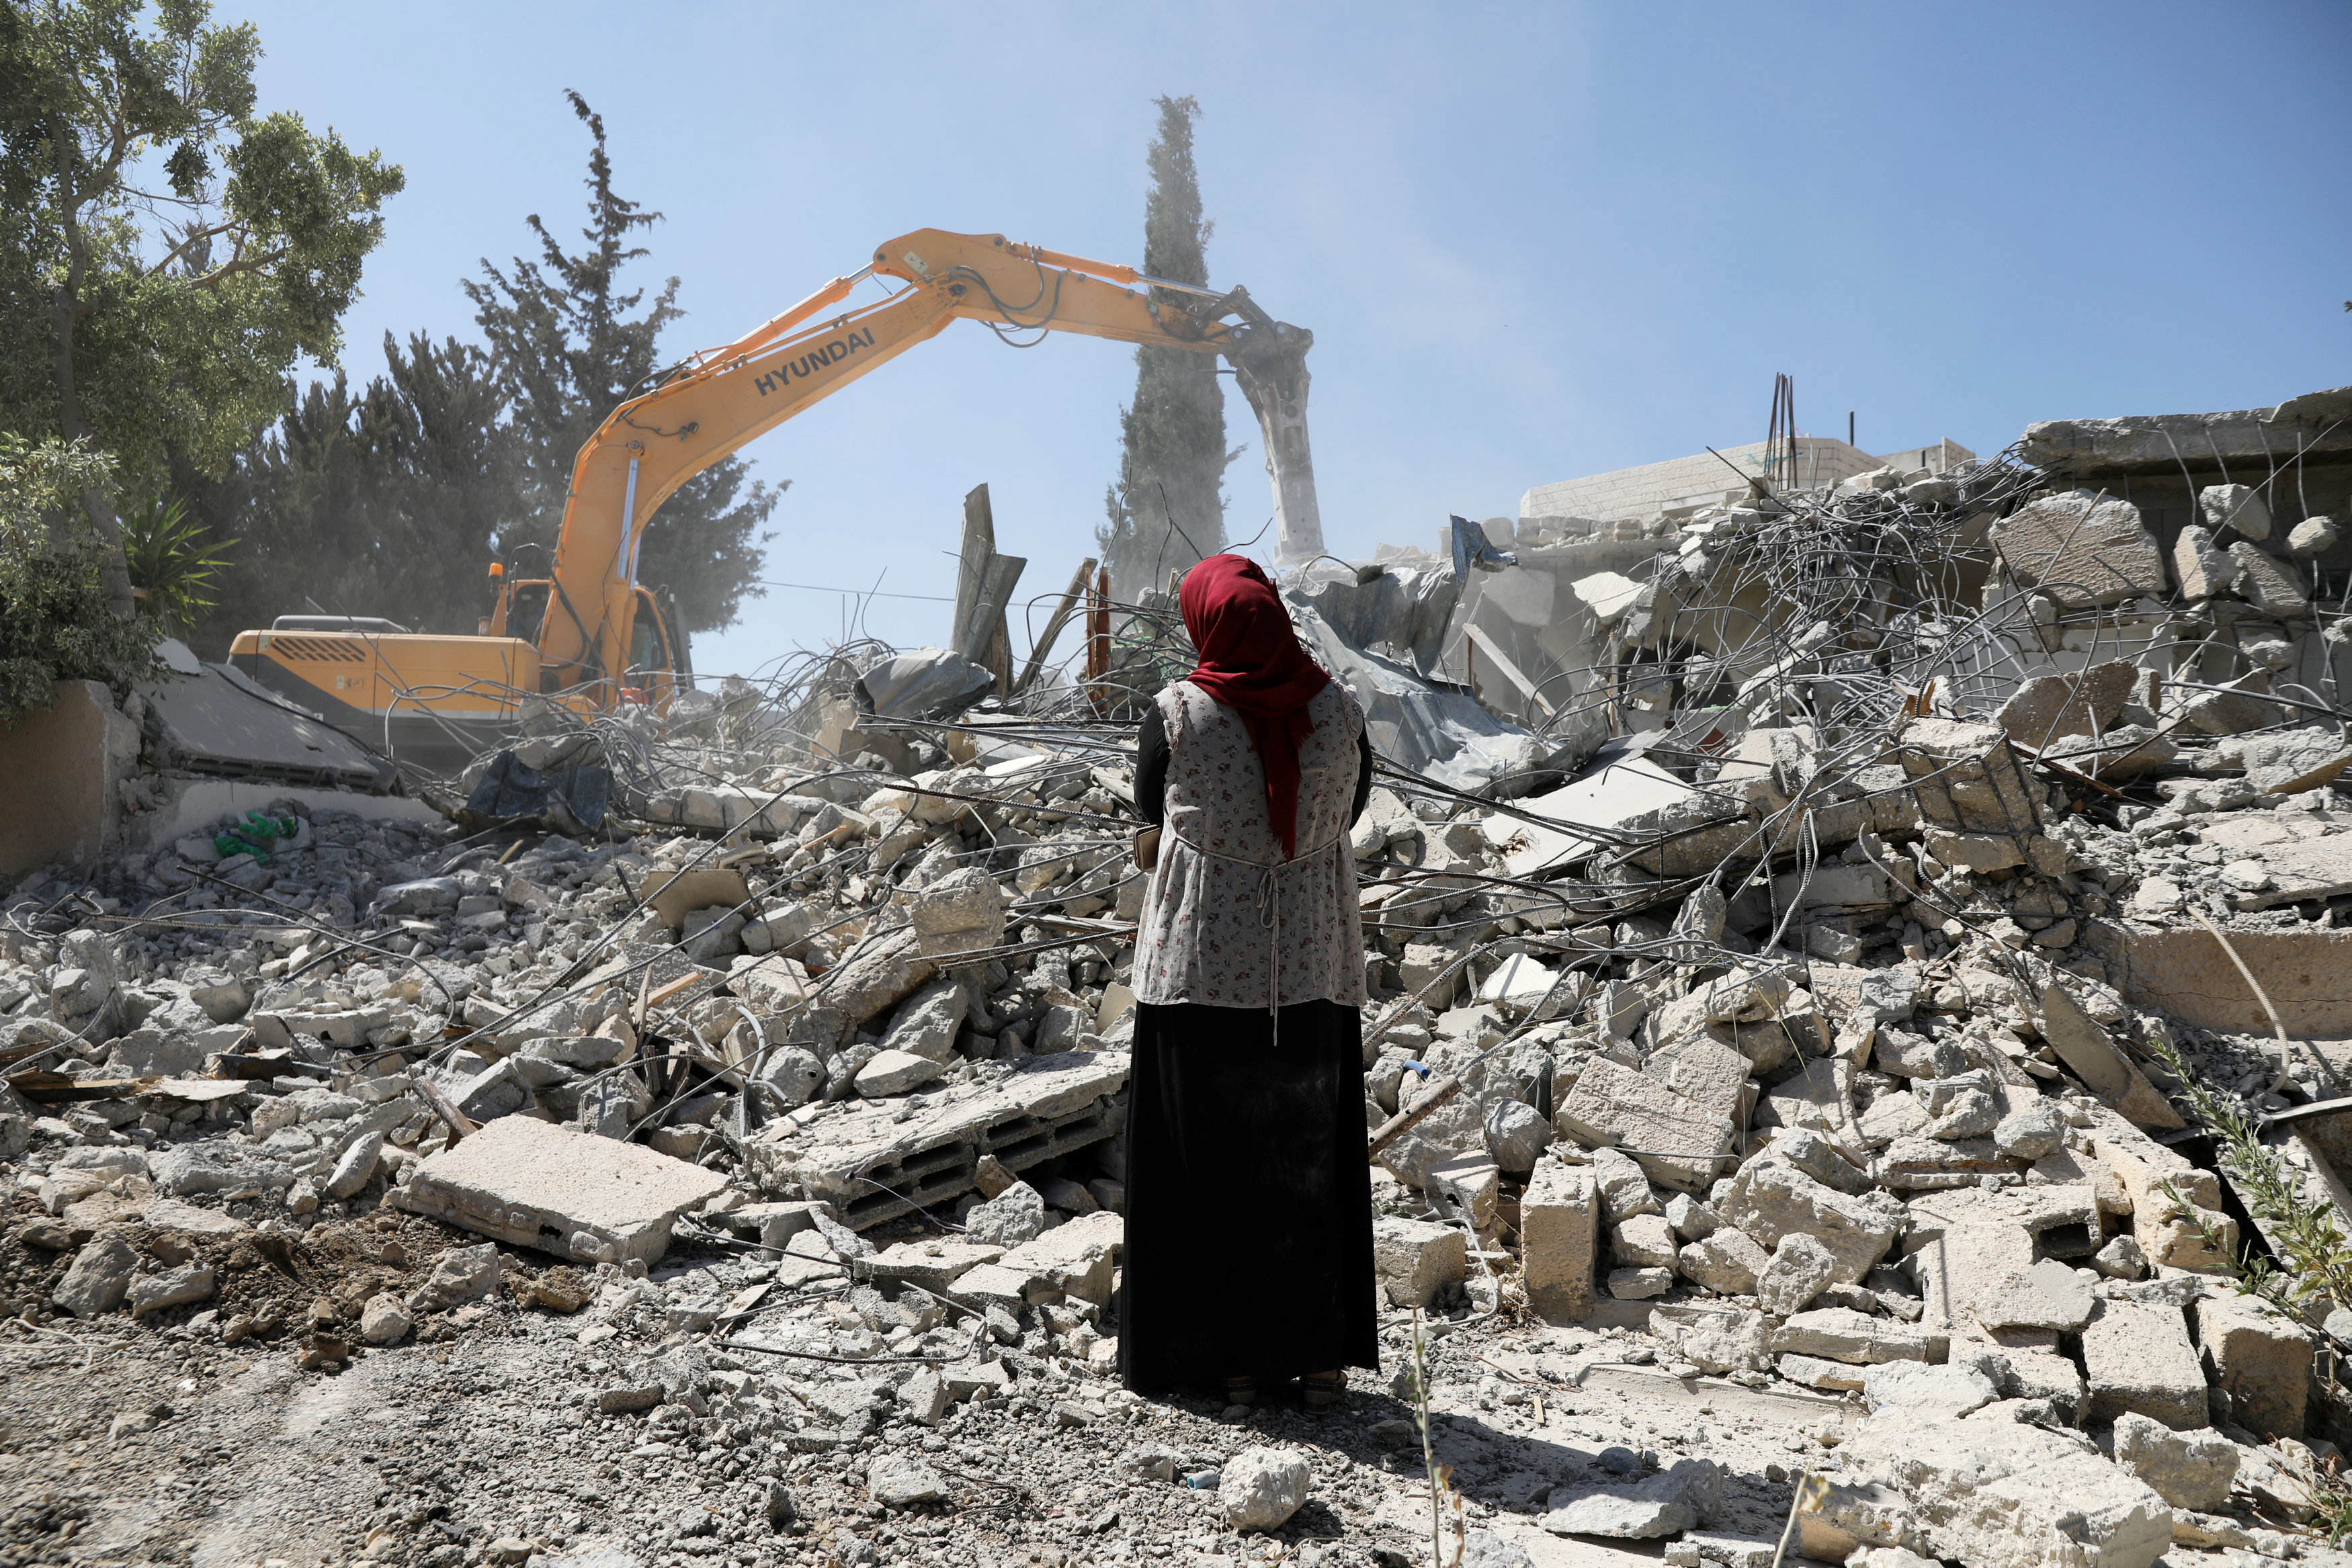 Fawzia stands on the ruins of her house, after her Palestinian ex-husband demolished the dwelling to not face the prospect of Israeli settlers moving in after he lost a land ownership case in Israeli courts